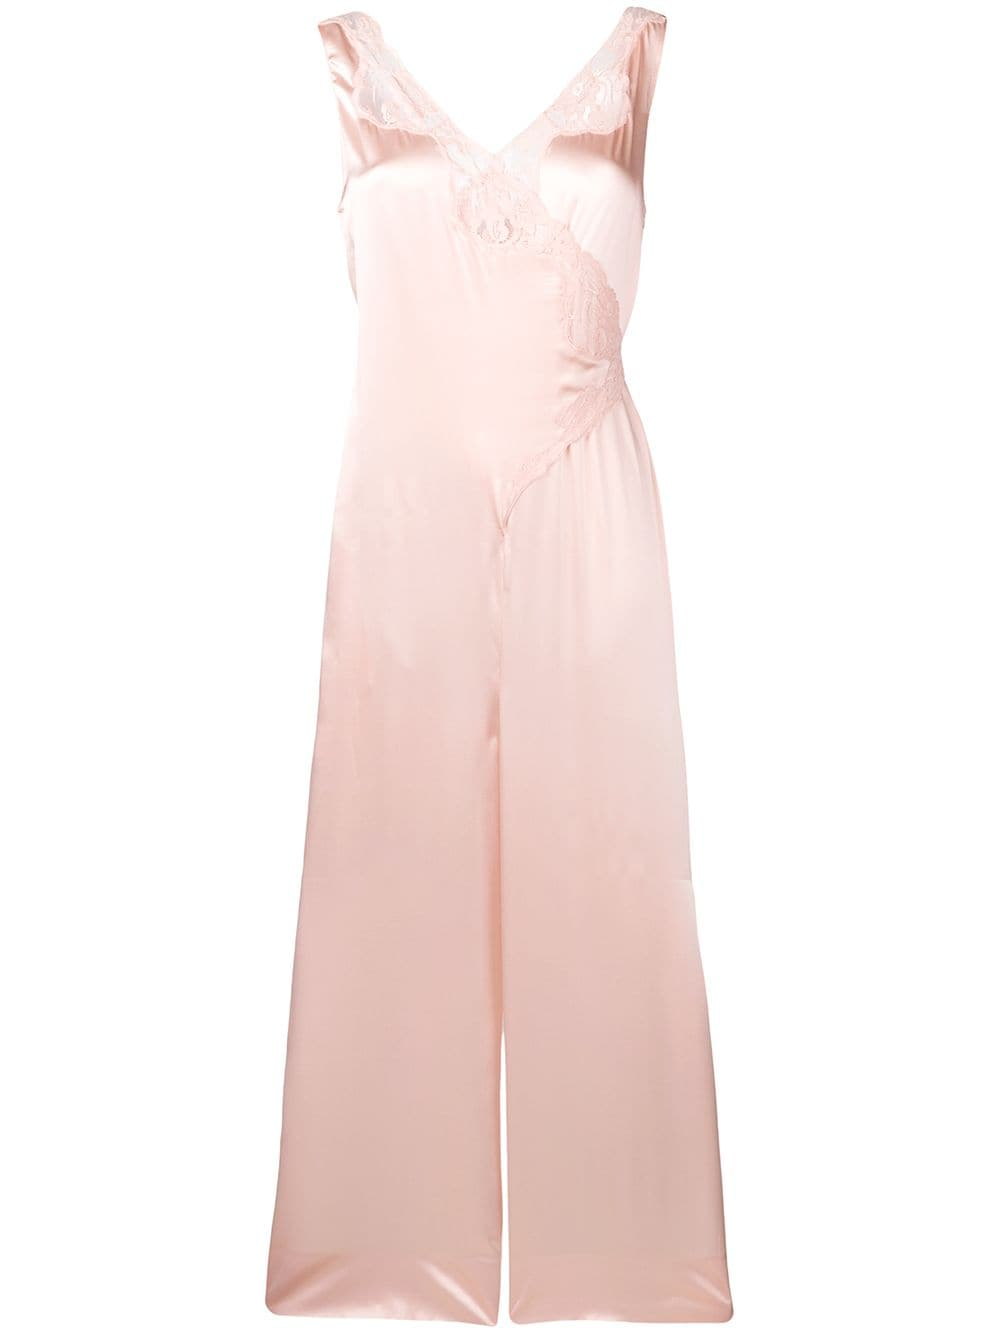 Stella McCartney lace detail jumpsuit - Pink von Stella McCartney